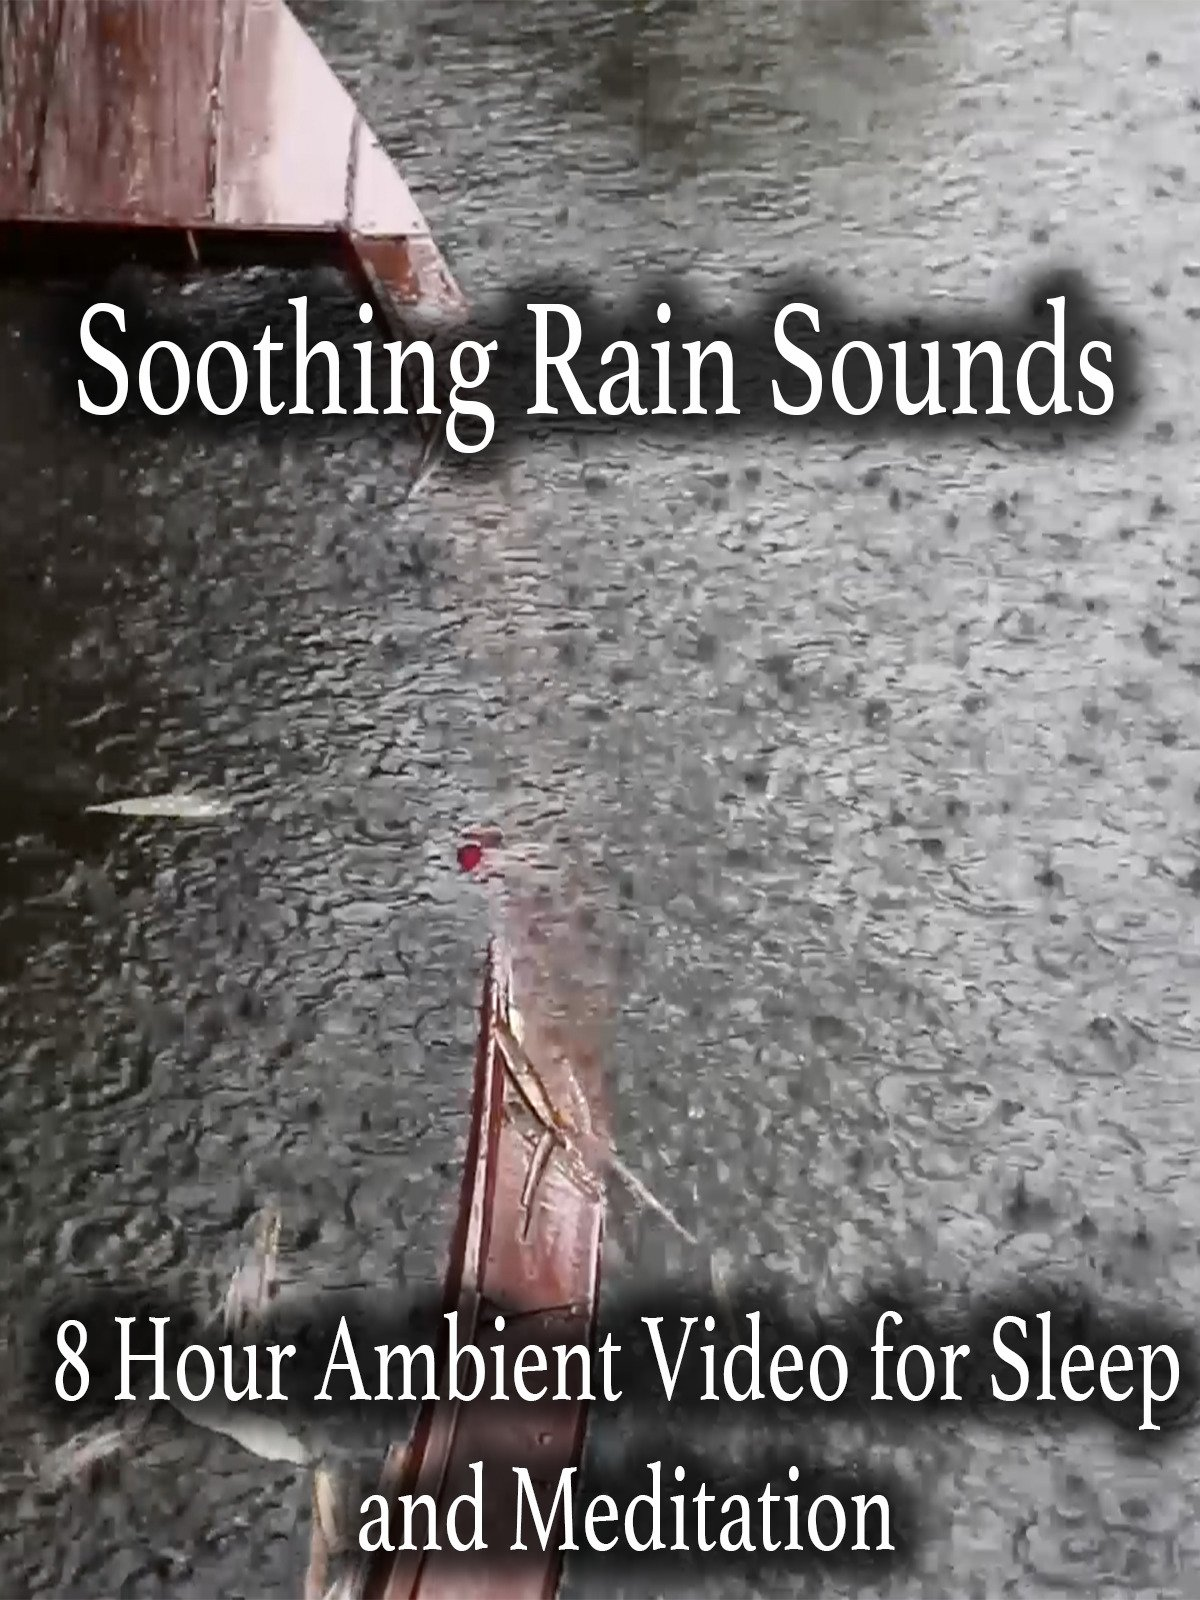 Soothing Rain Sounds 8 Hour Video for Sleeping and Meditation